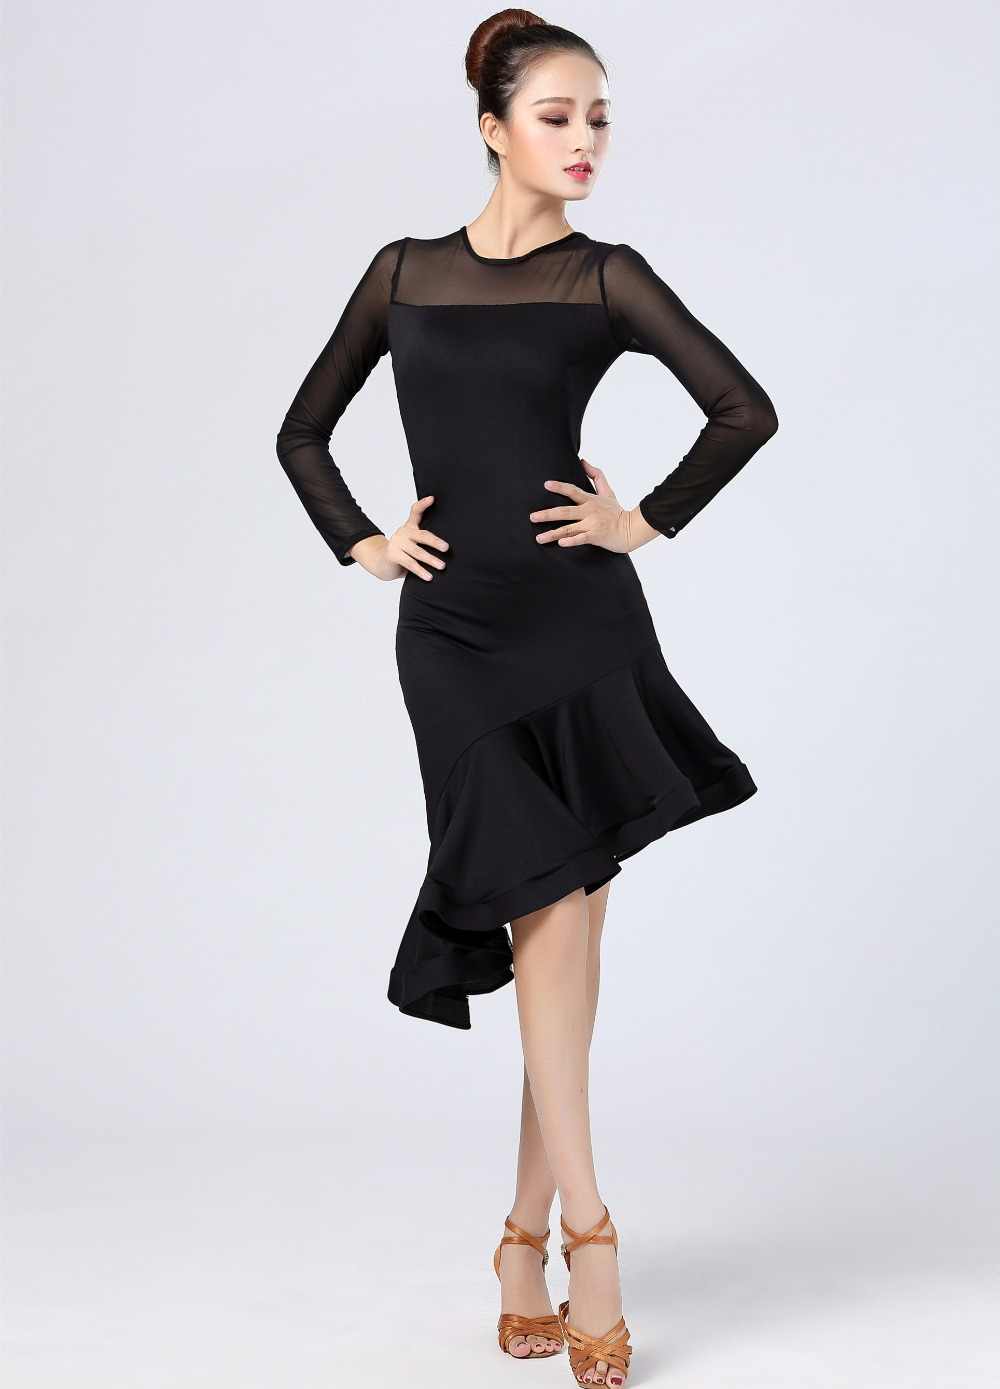 Aliexpress.com : Buy Black Latin dance dress 2018 new ...